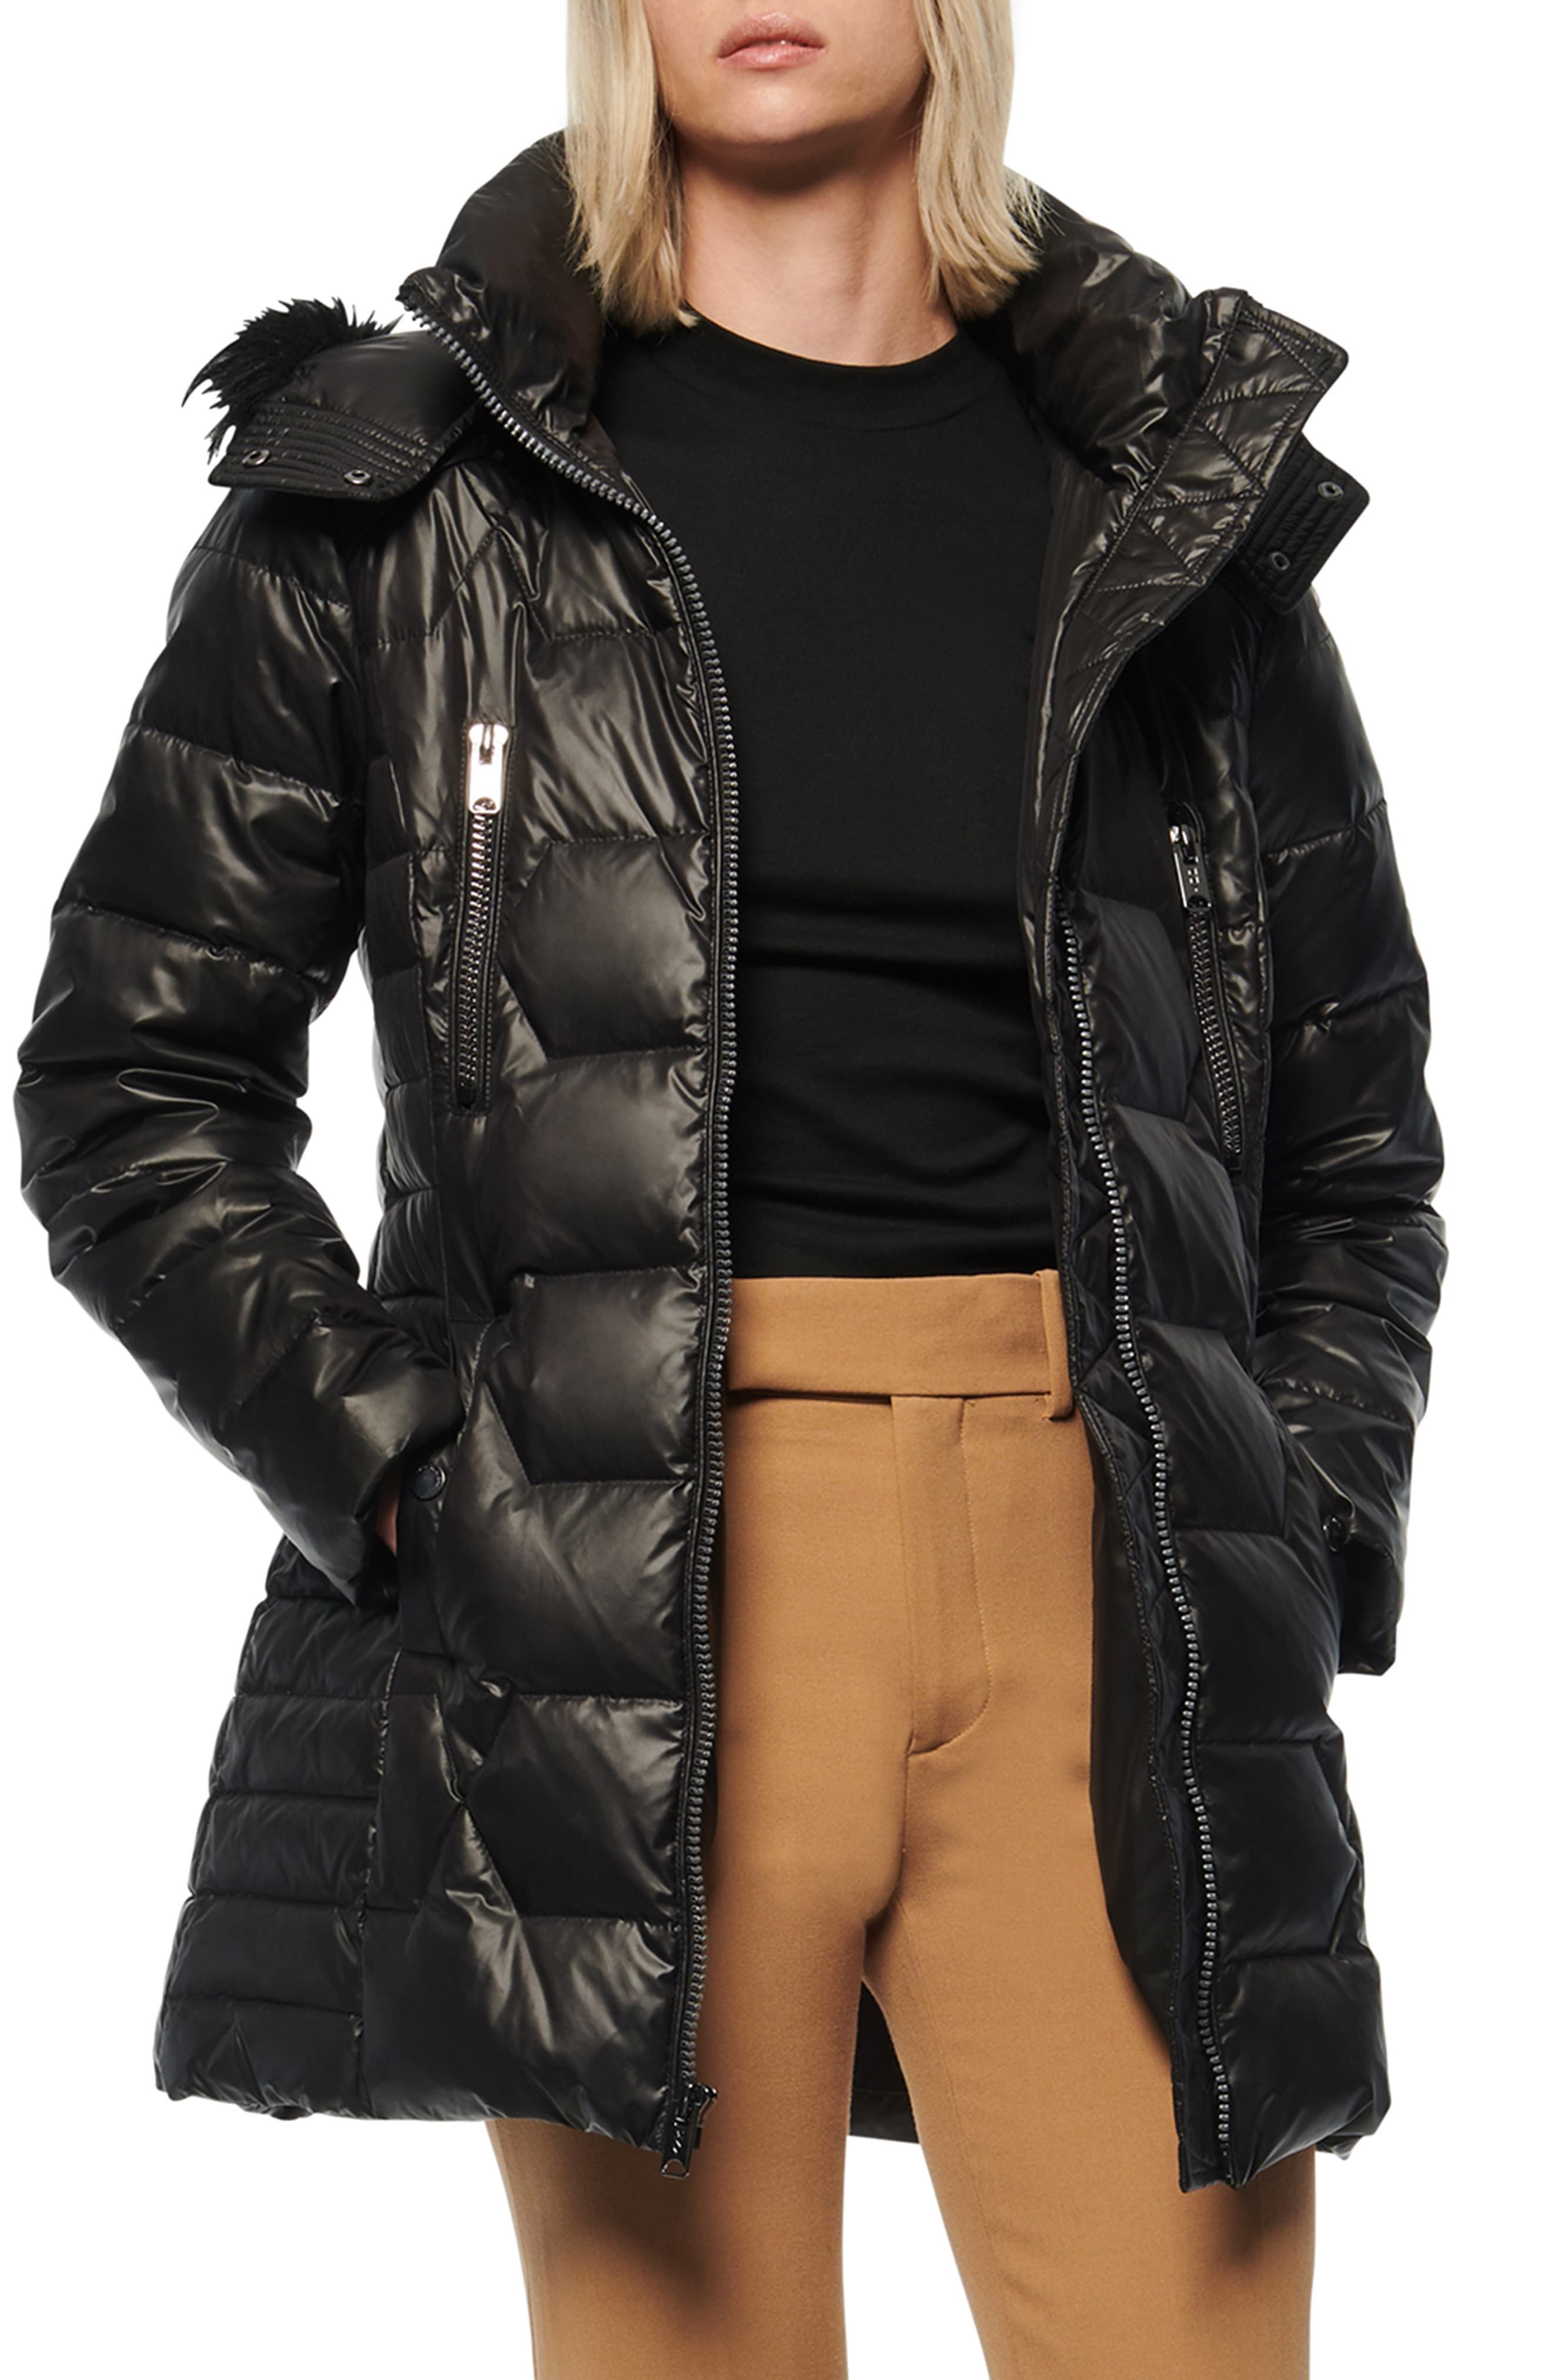 Andrew Marc Pomona Faux Fur Trim Down Puffer Jacket Nordstrom Rack In 2021 Marc New York Quilted Puffer Jacket Puffer Jackets [ 4048 x 2640 Pixel ]